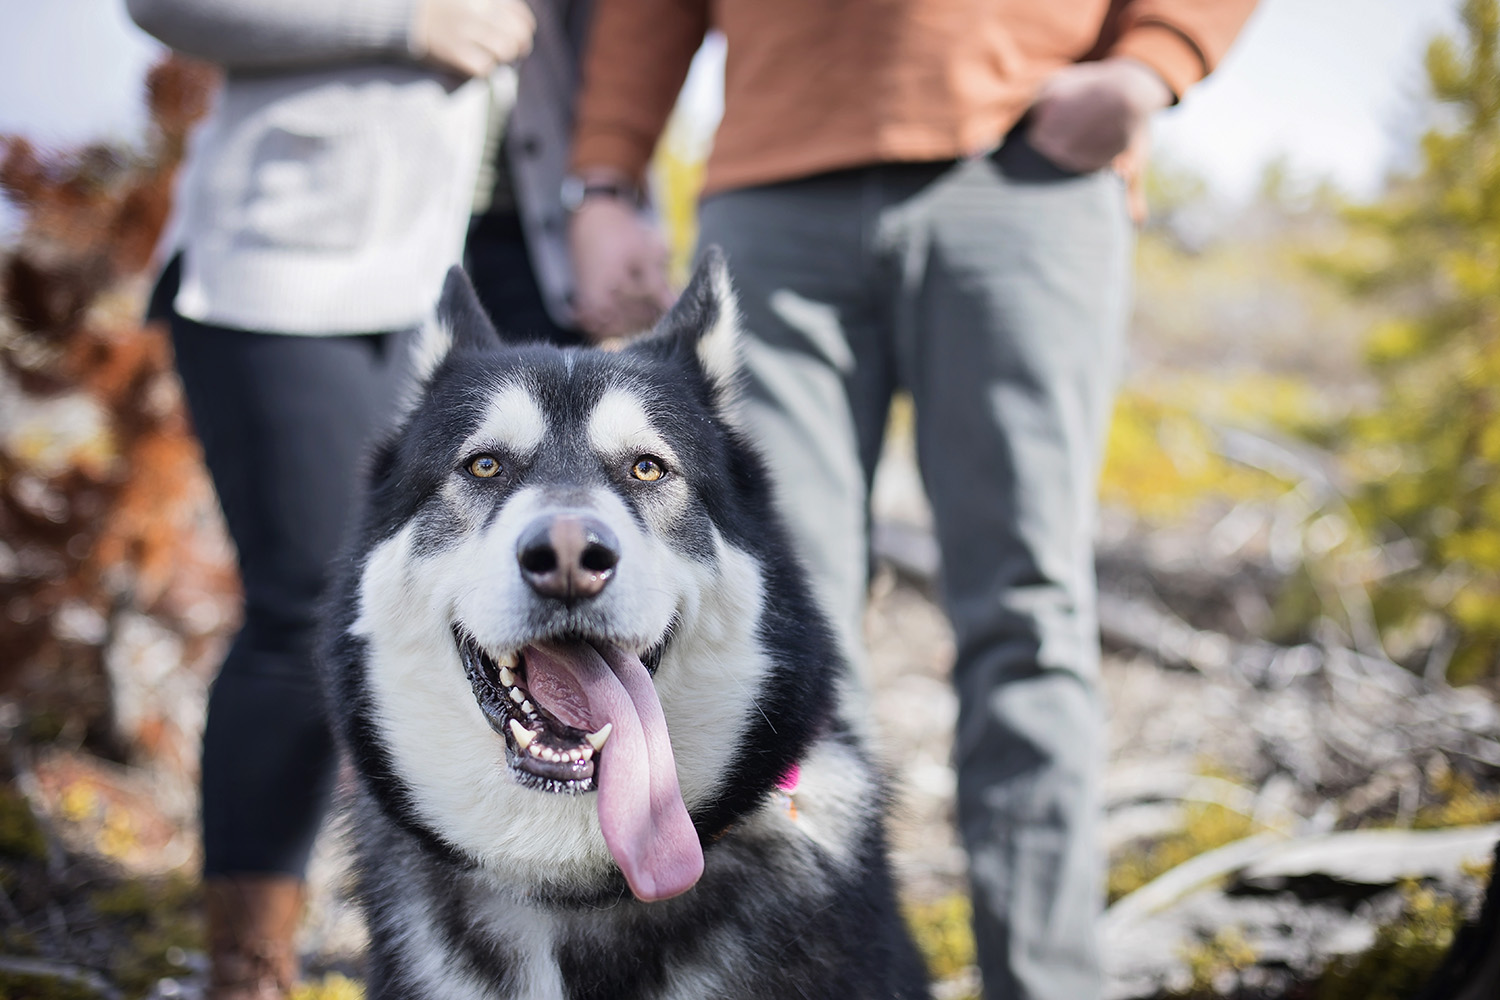 Big black and white husky in foreground with engaged couple behind him